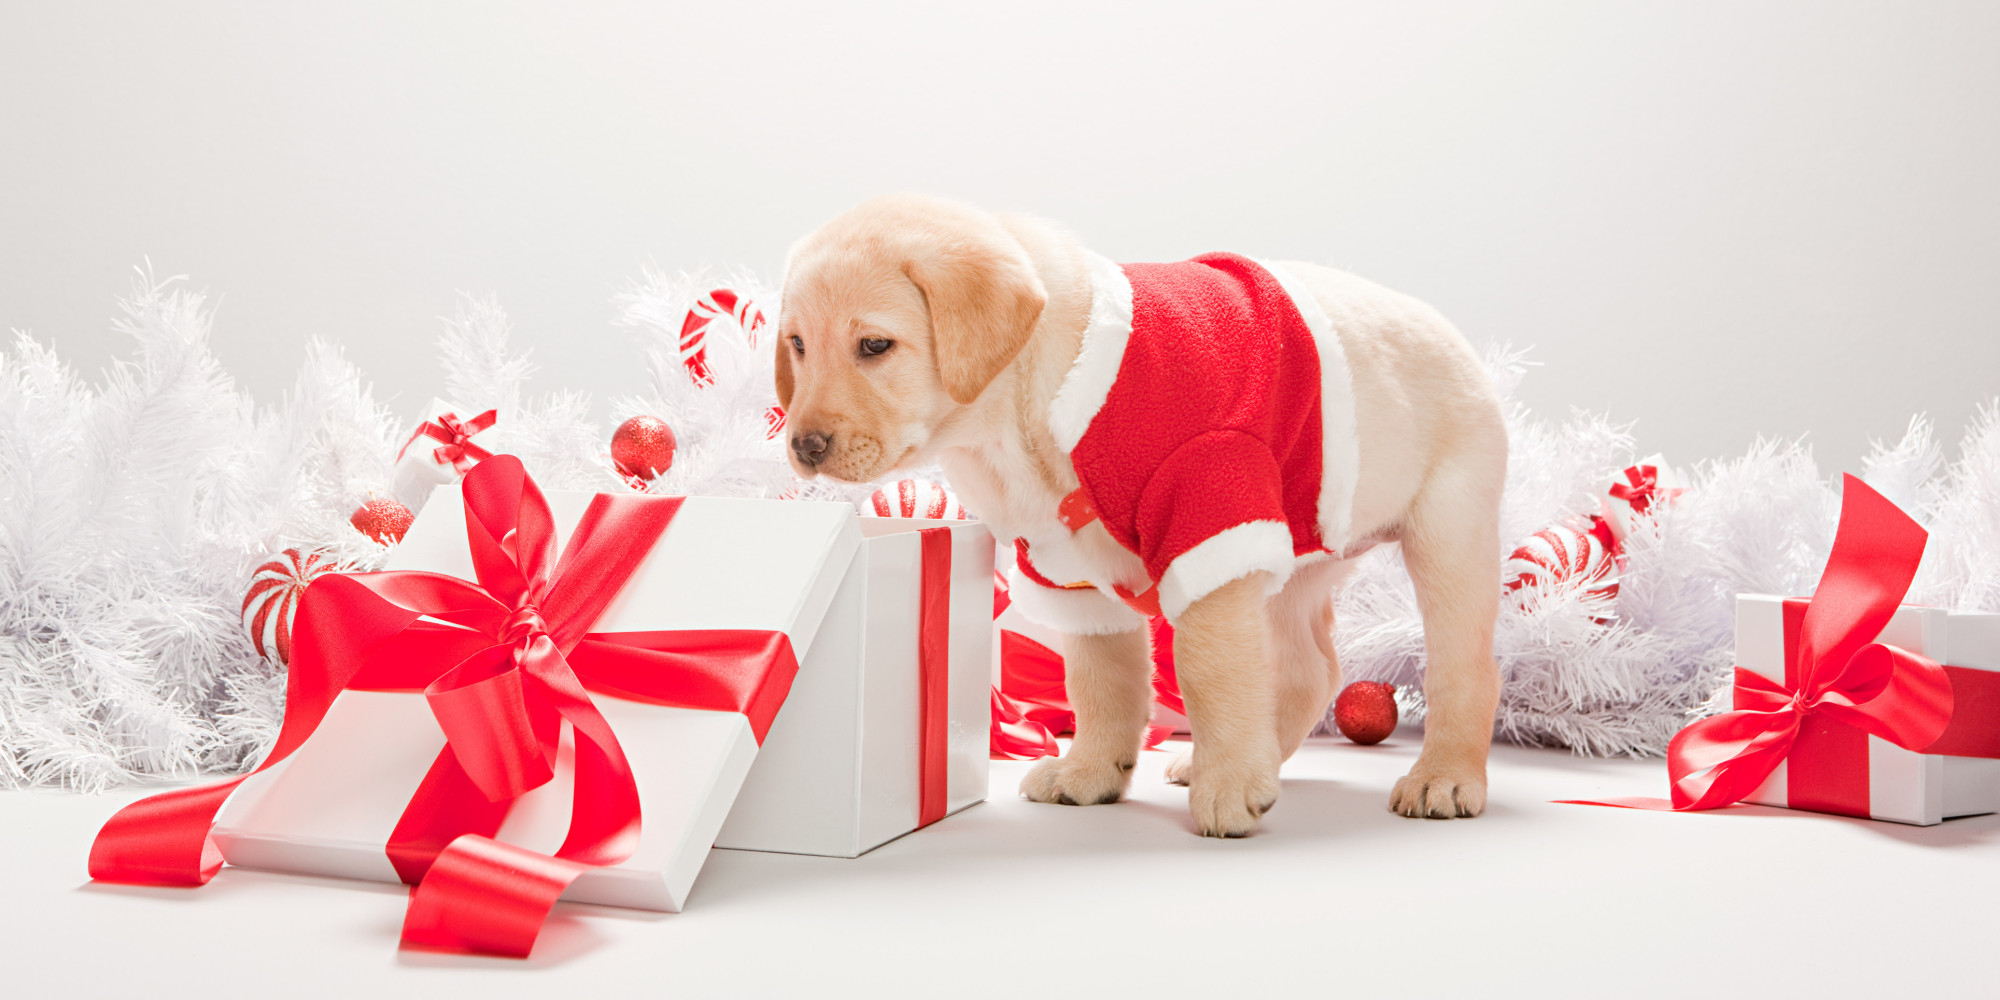 Pet Gift Ideas: What To Buy Your Dogs And Cats For Christmas